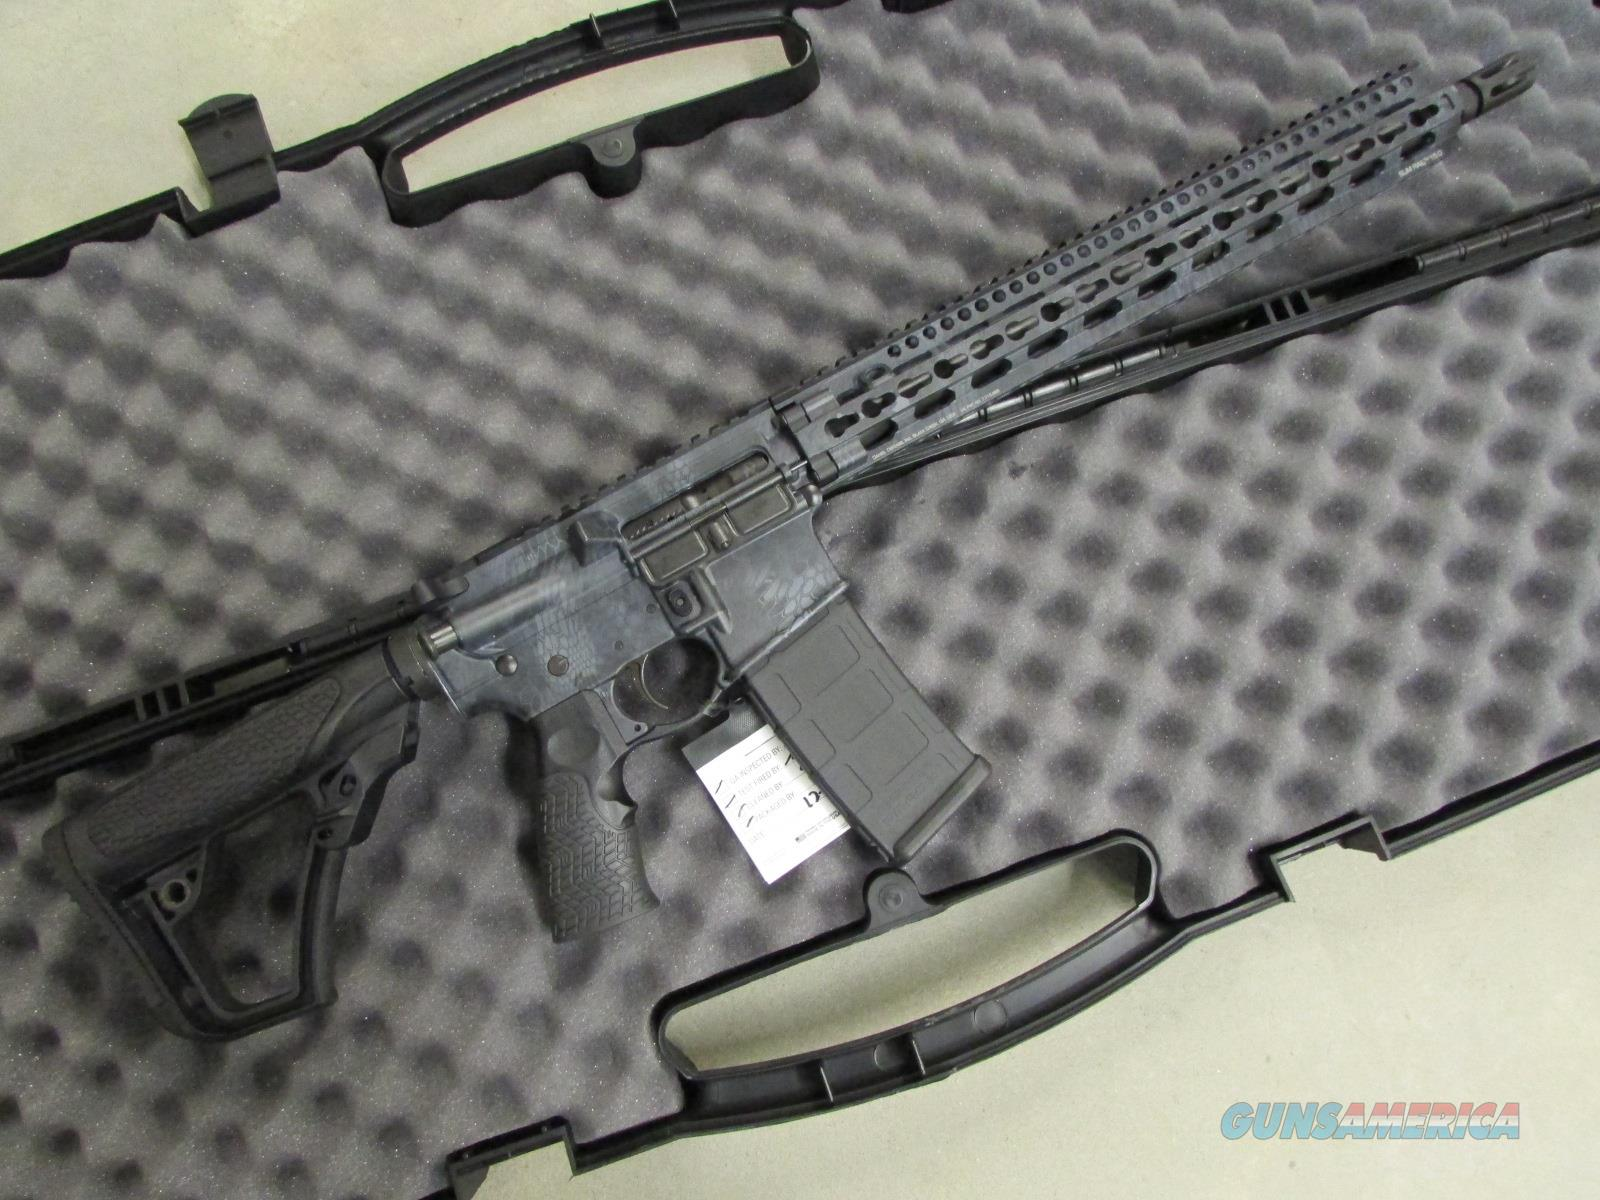 Daniel Defense M4 V11 DDM4V11 (Kryptec Typhon) 5.56 NATO 02-151-05148-047  Guns > Rifles > Daniel Defense > Complete Rifles